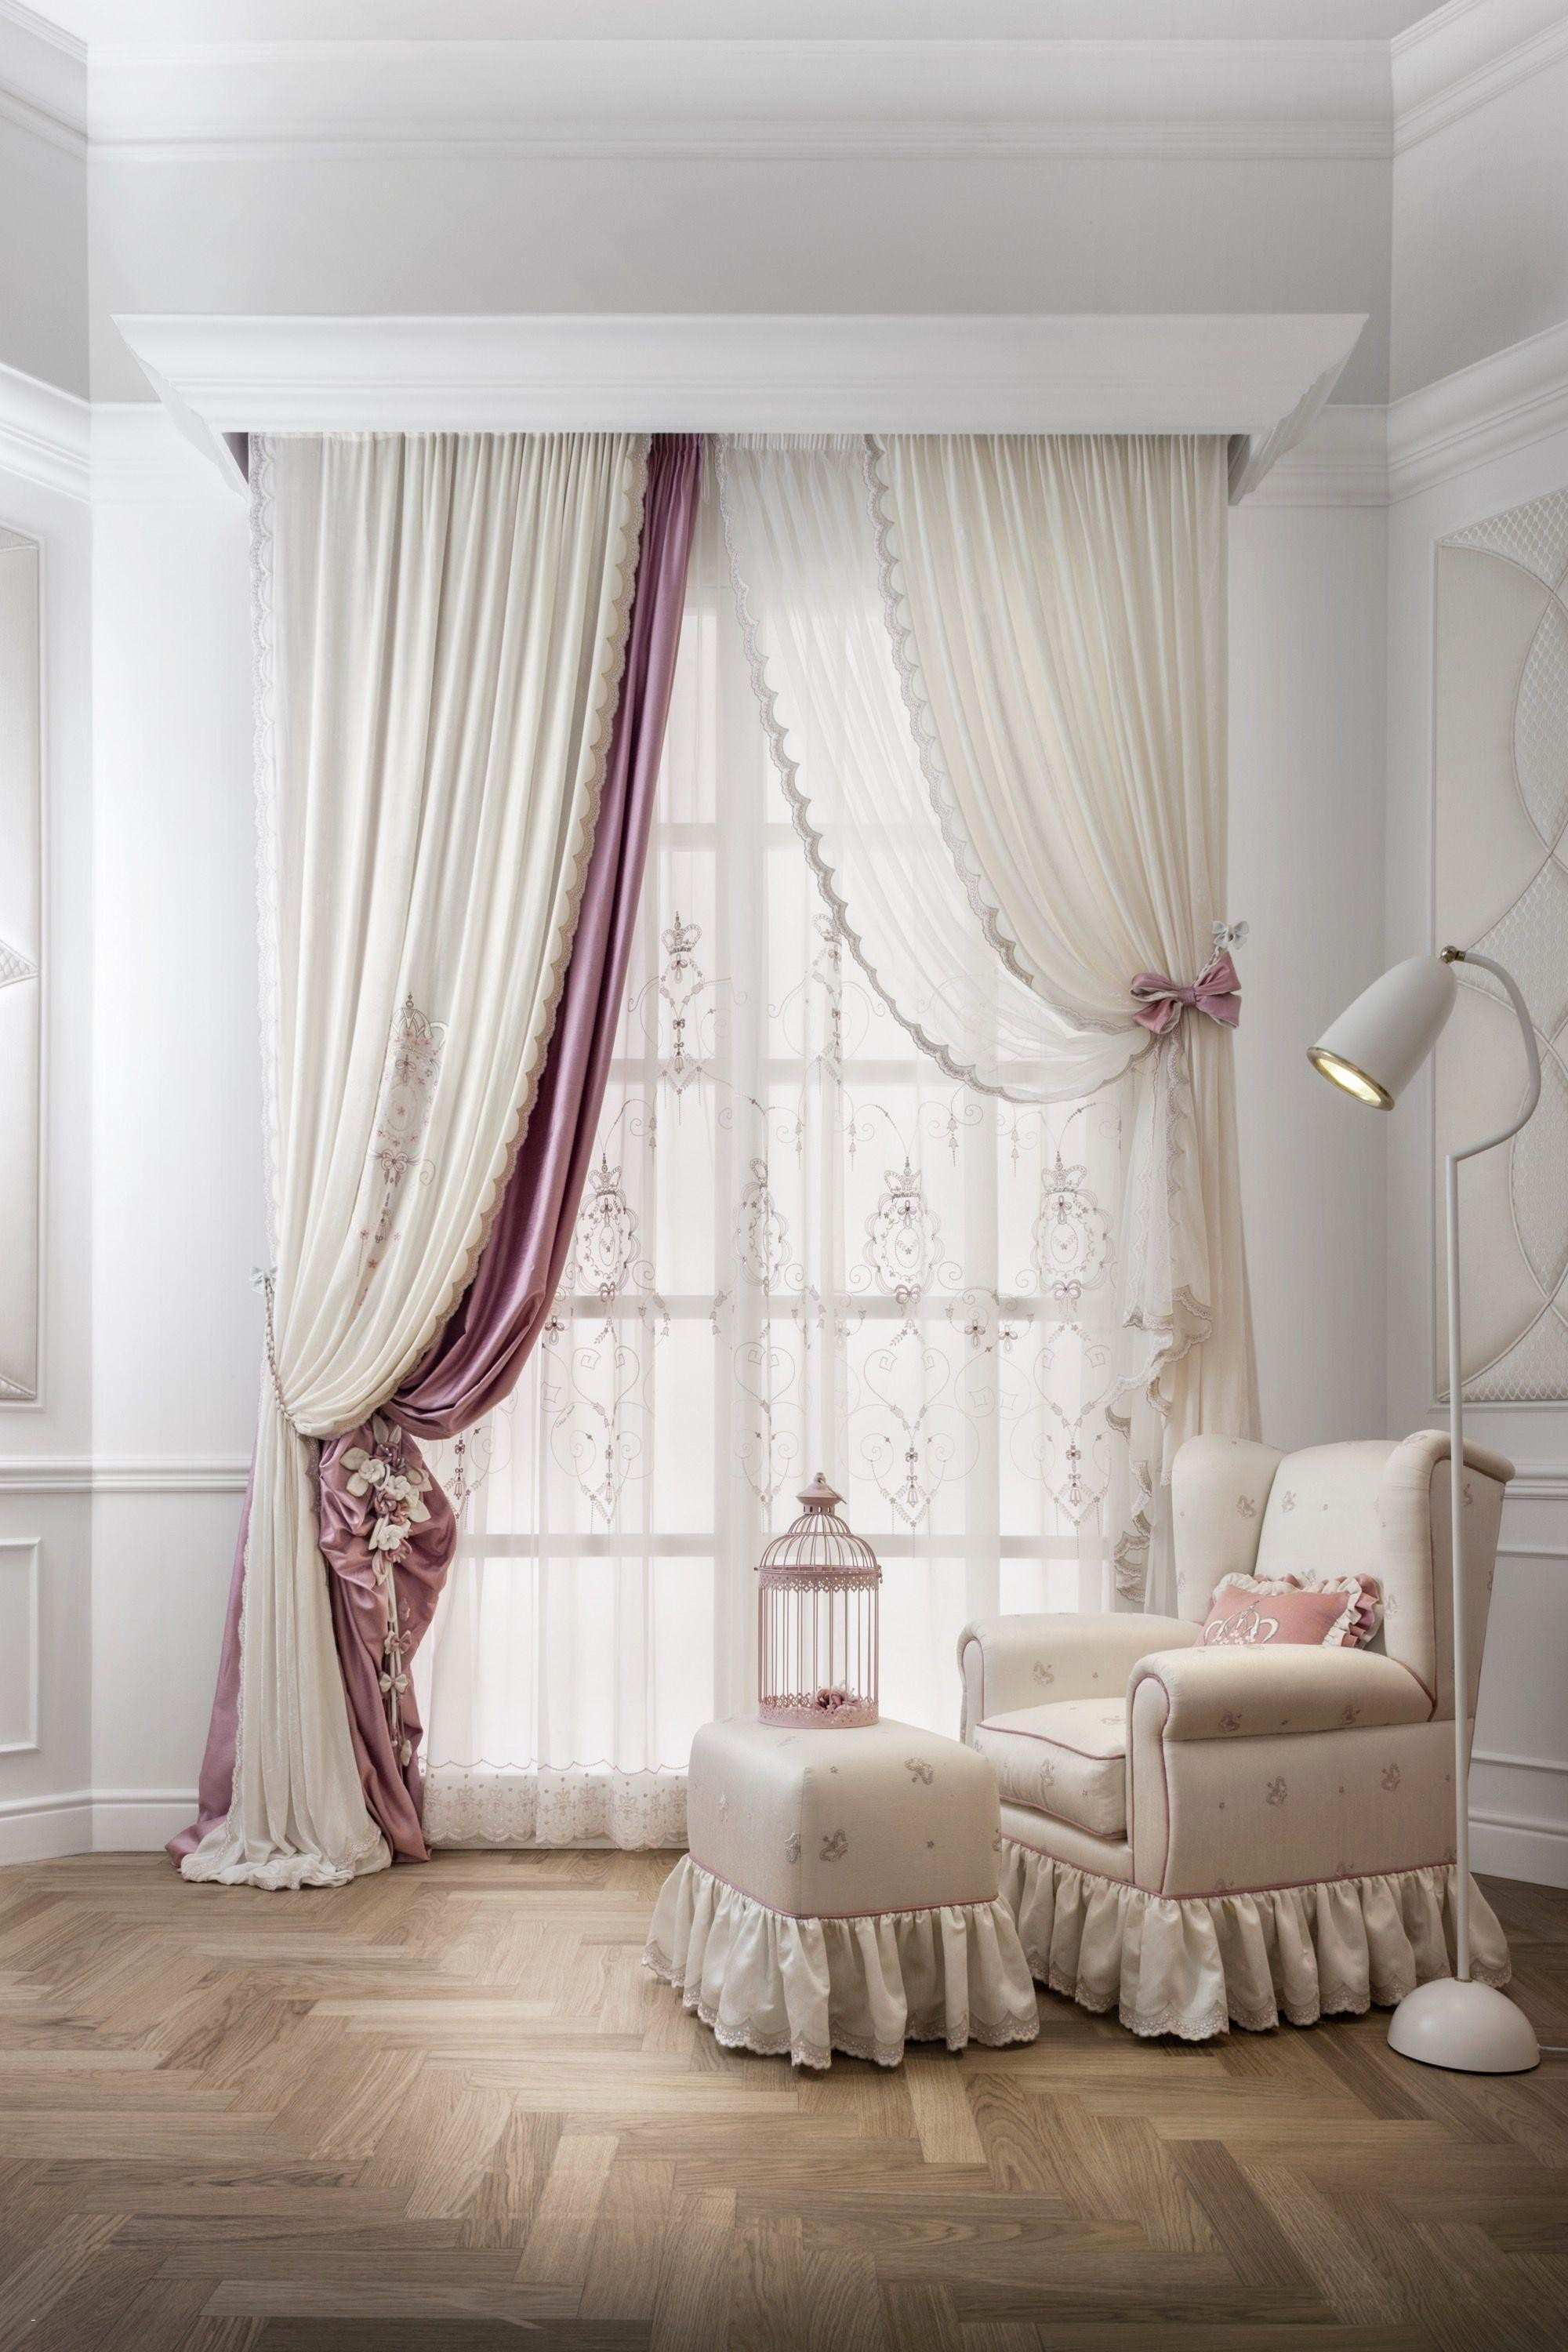 35 Elegant Over the Bed Wall Decor